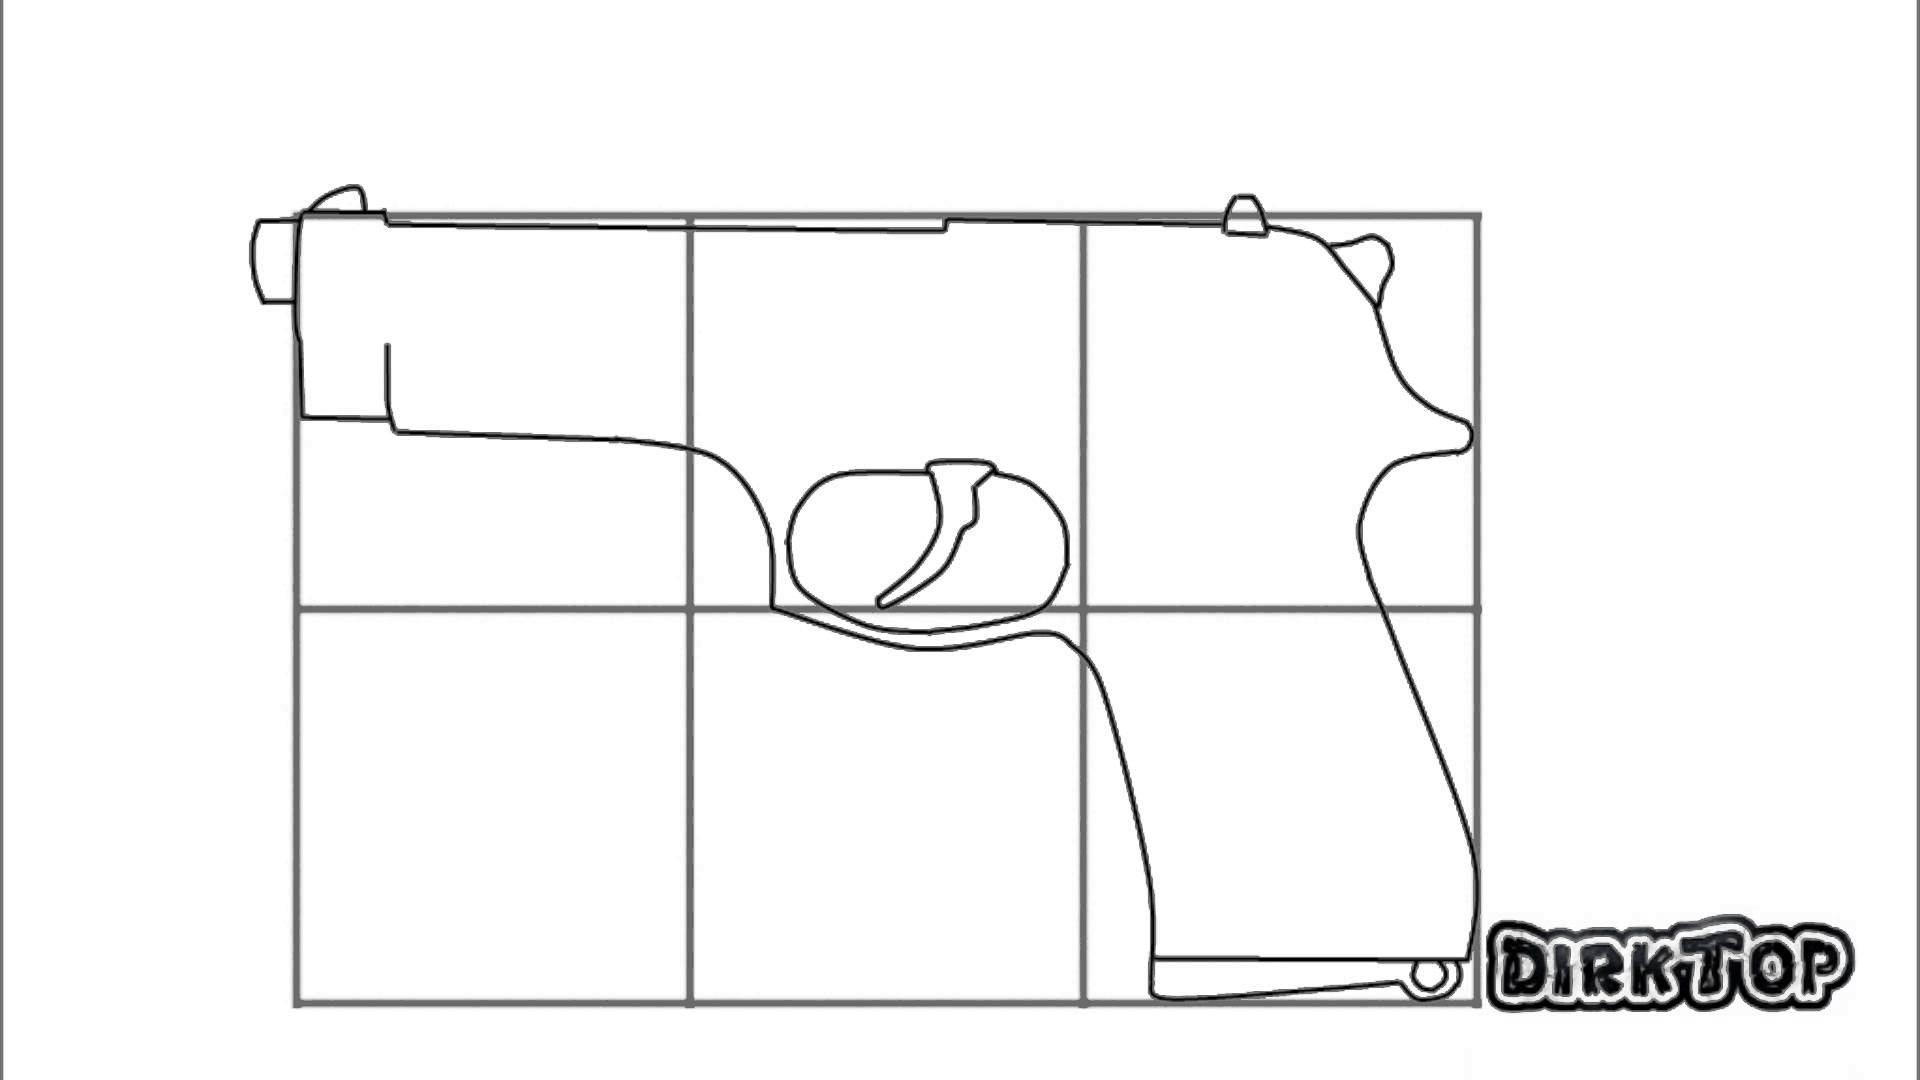 Drawn pistol step by step Step How To Step A